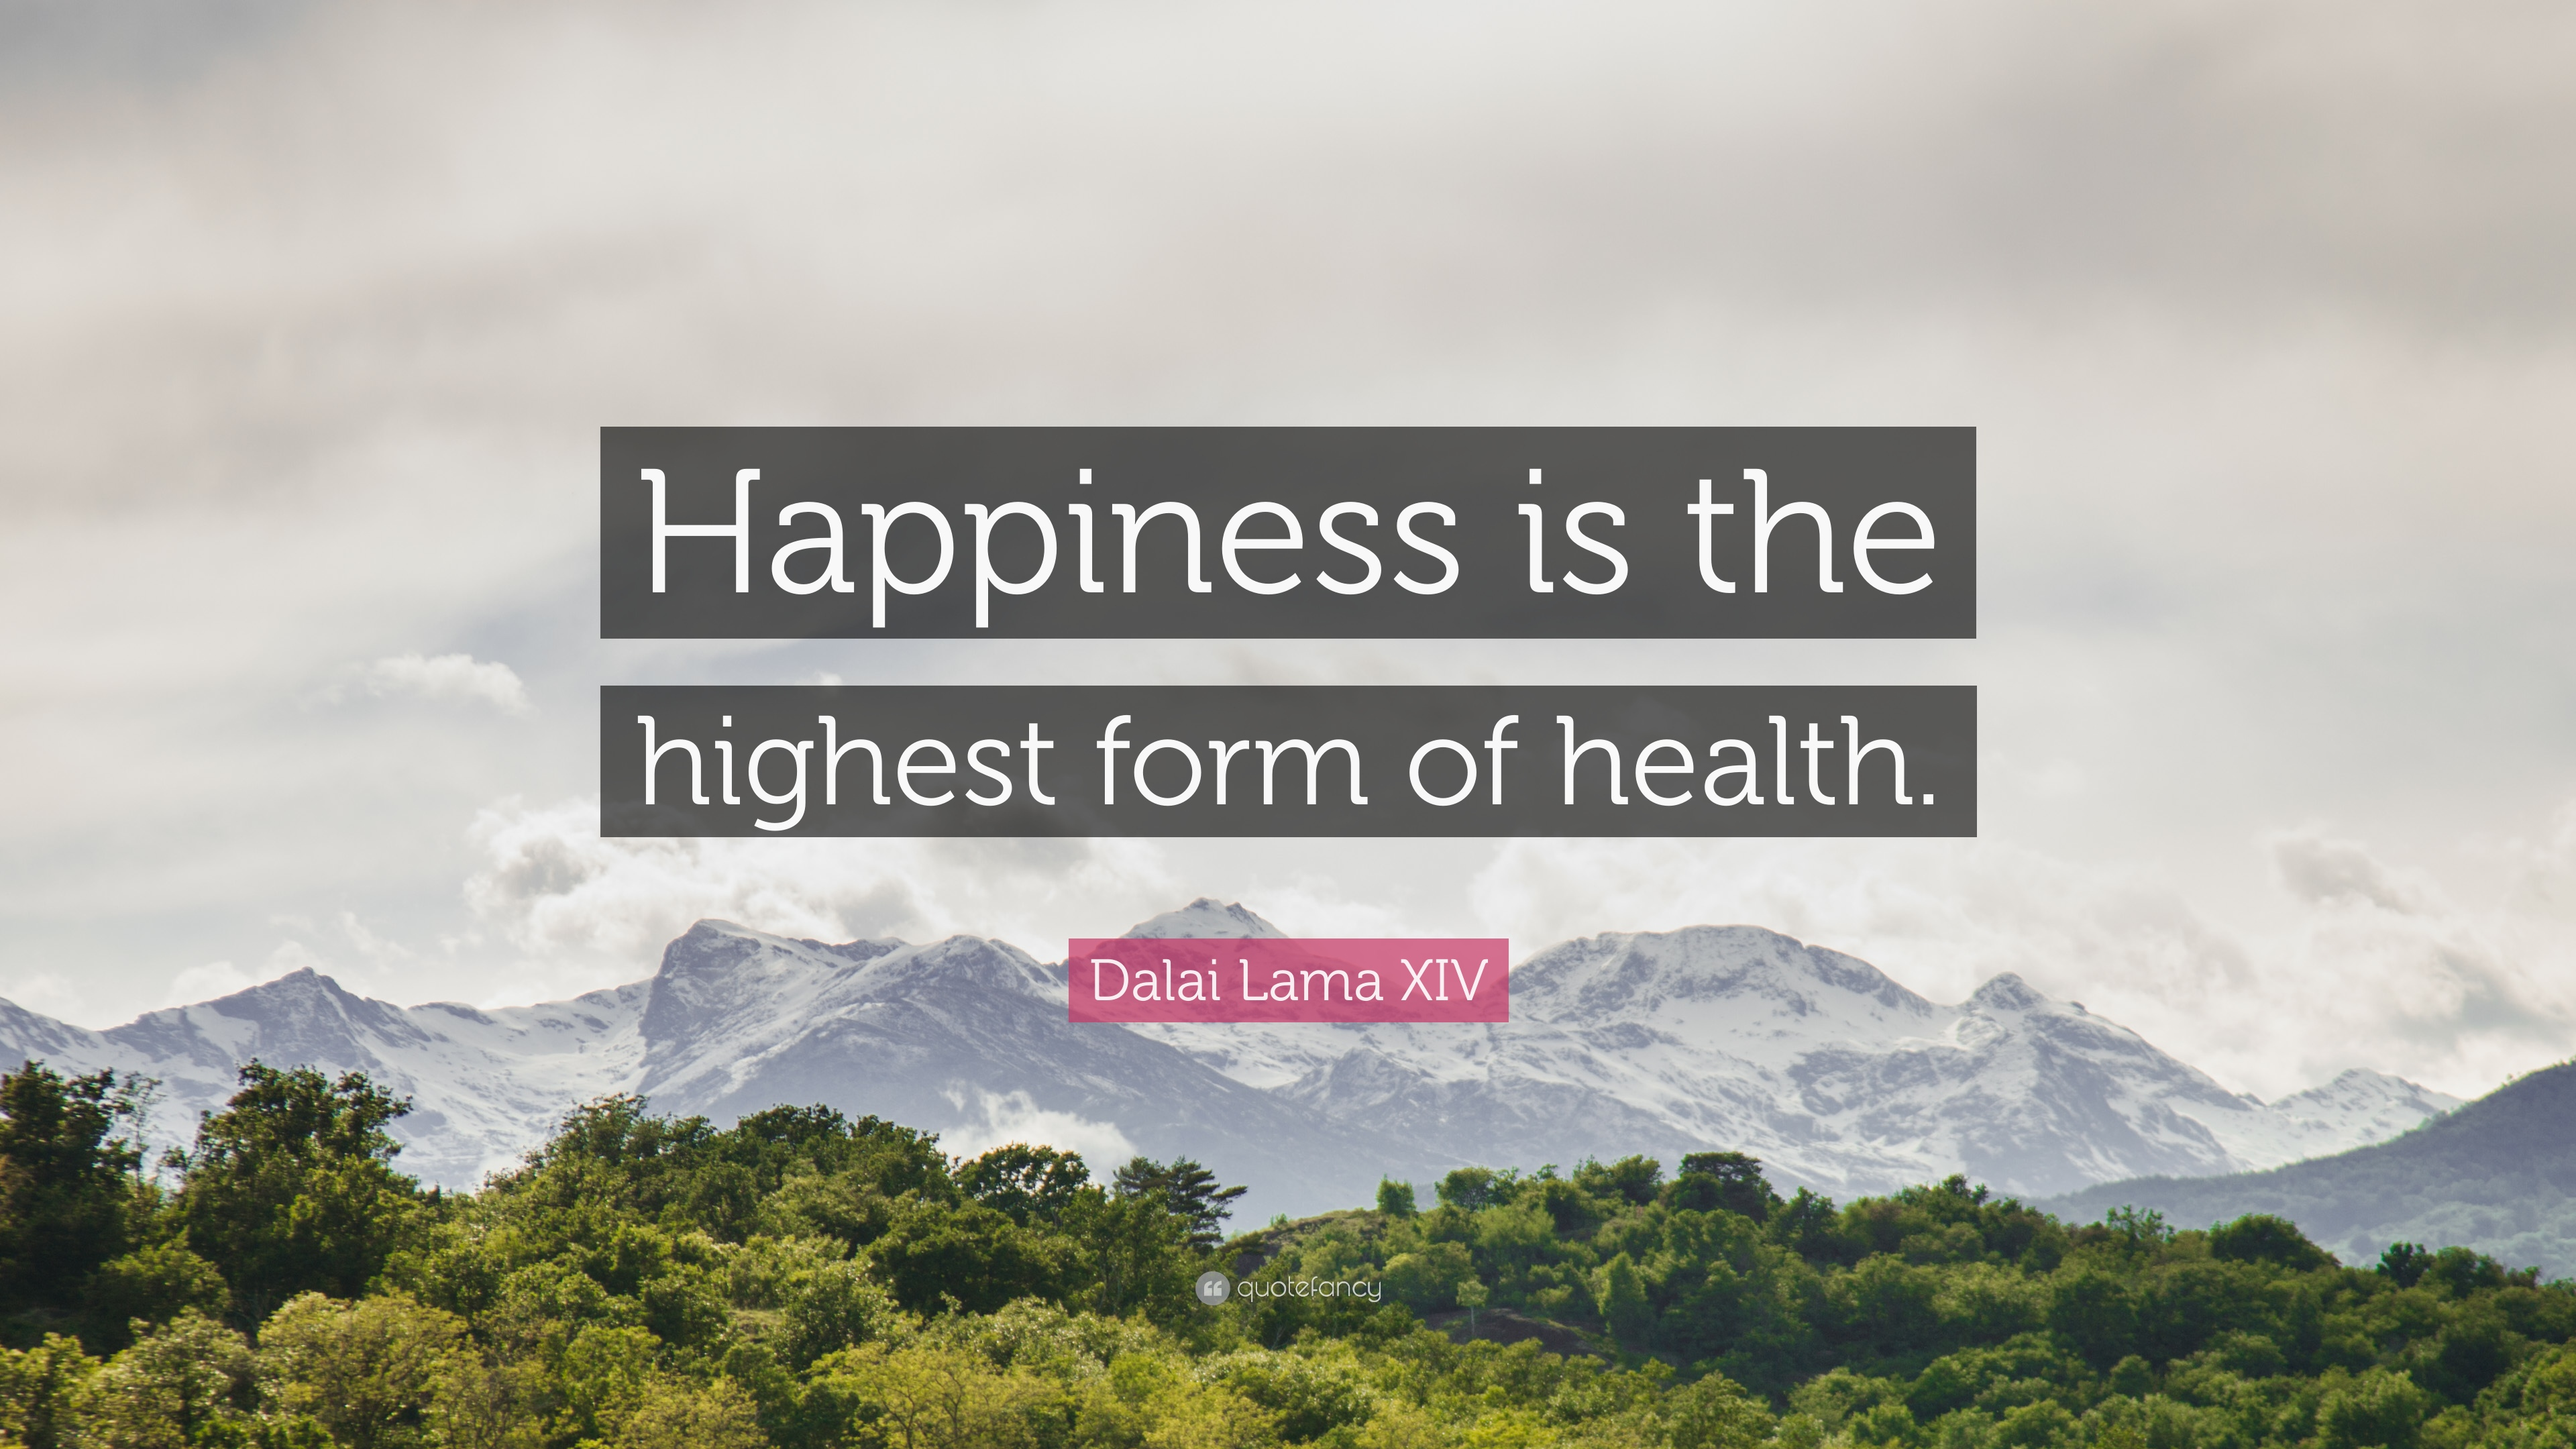 Dalai Lama Xiv Quote Happiness Is The Highest Form Of Health 10